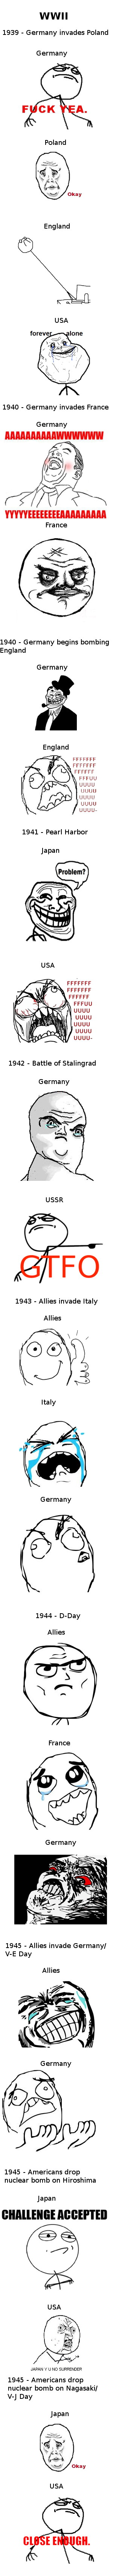 A short illustrated summary of WWII